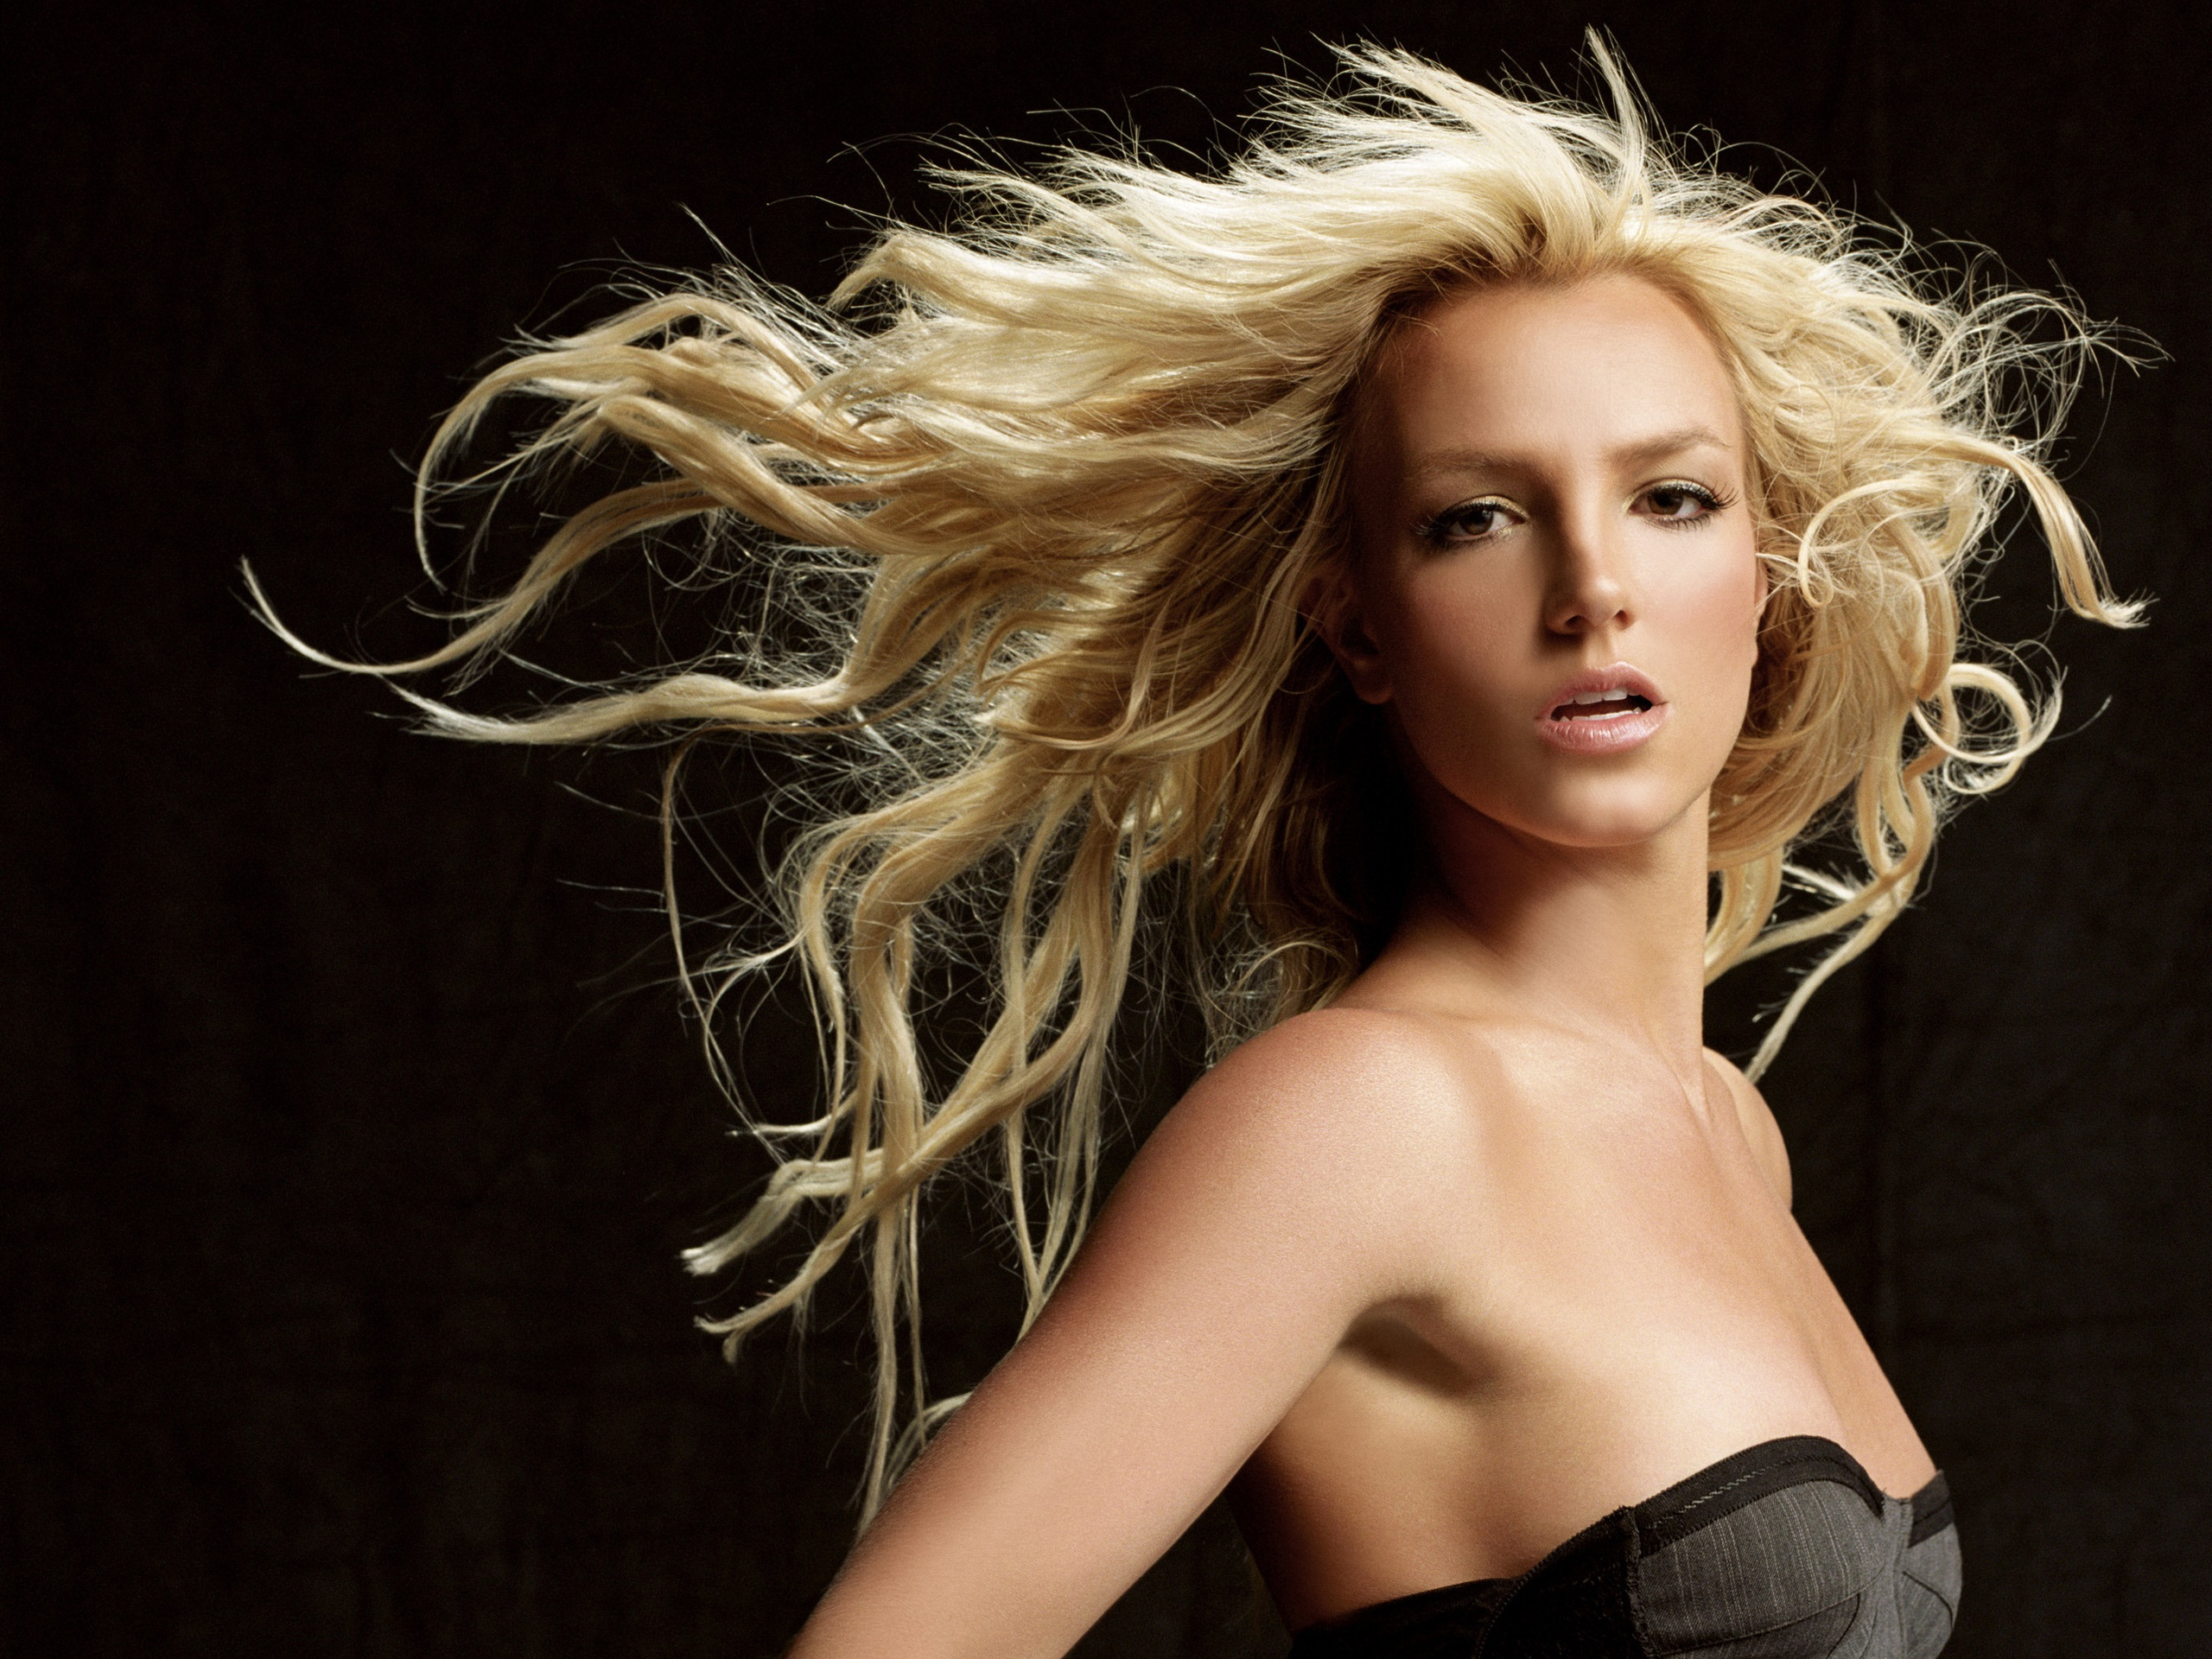 brittany spears essay Britney spears - slumber party ft tinashe britney spears loading unsubscribe from britney spears cancel unsubscribe working subscribe subscribed unsubscribe 61m.